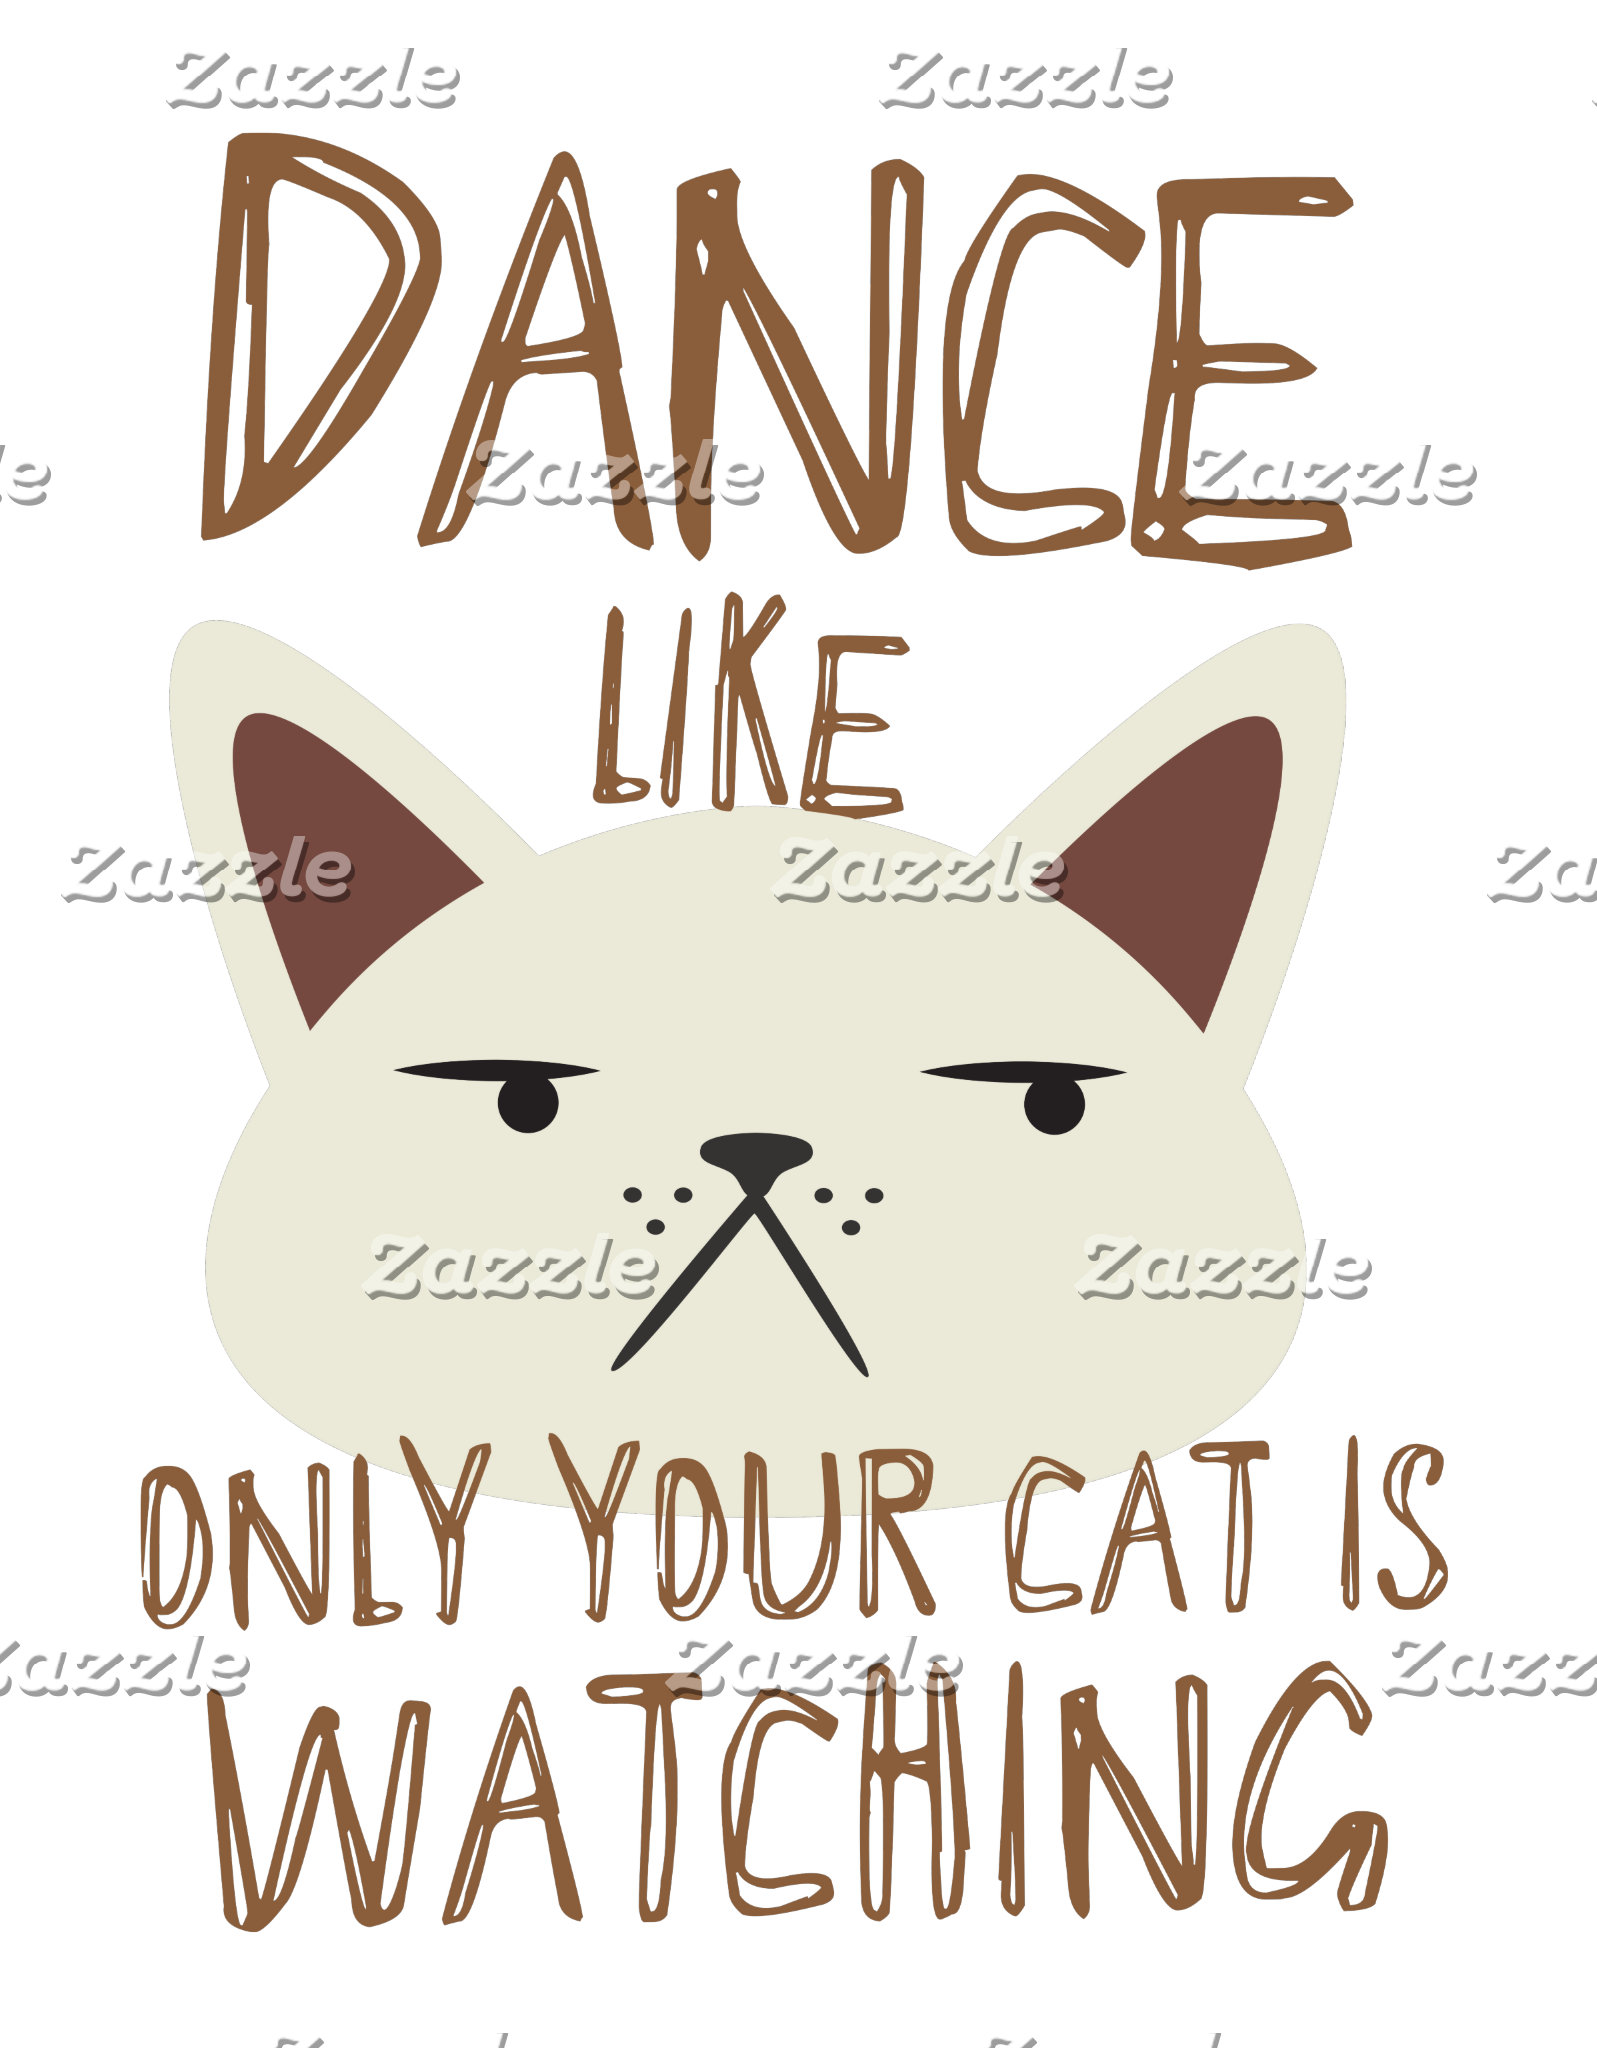 Dance like only your cat is watching